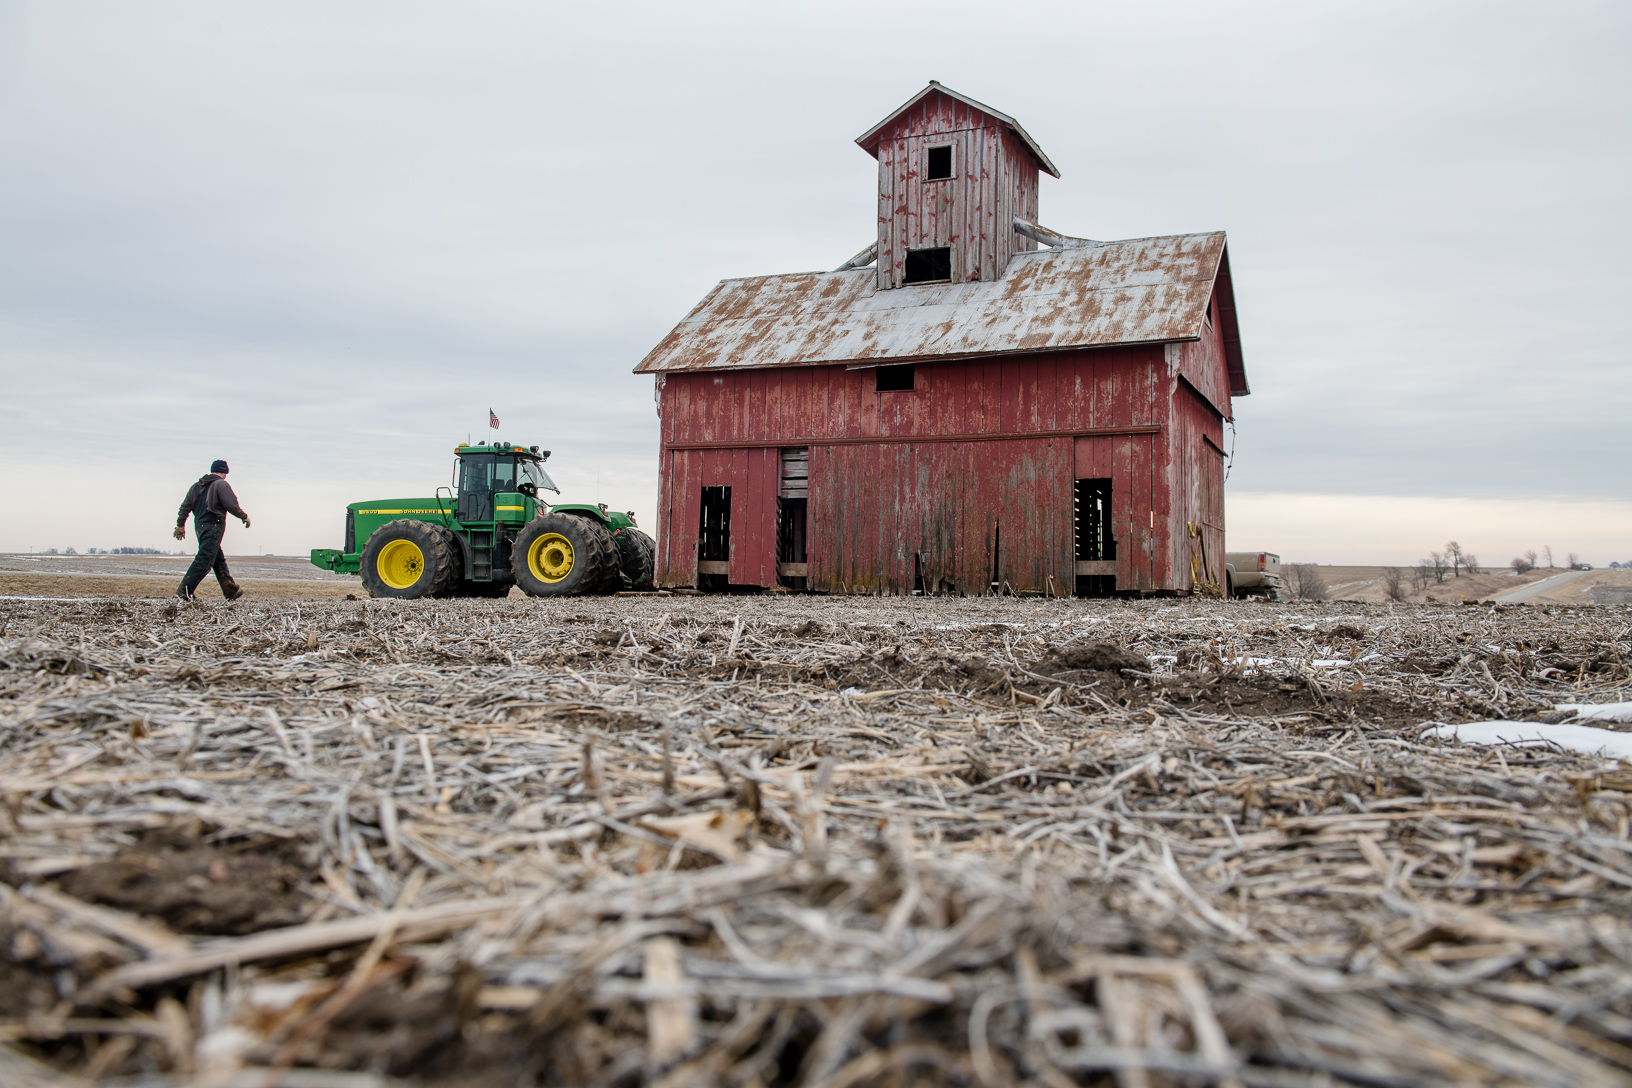 The crew chose this time of year to move the barn knowing the field would most likely not have deep snow and the ground would be frozen. If the ground wasn't frozen the crew worried that the barn would've quickly been mired in mud.